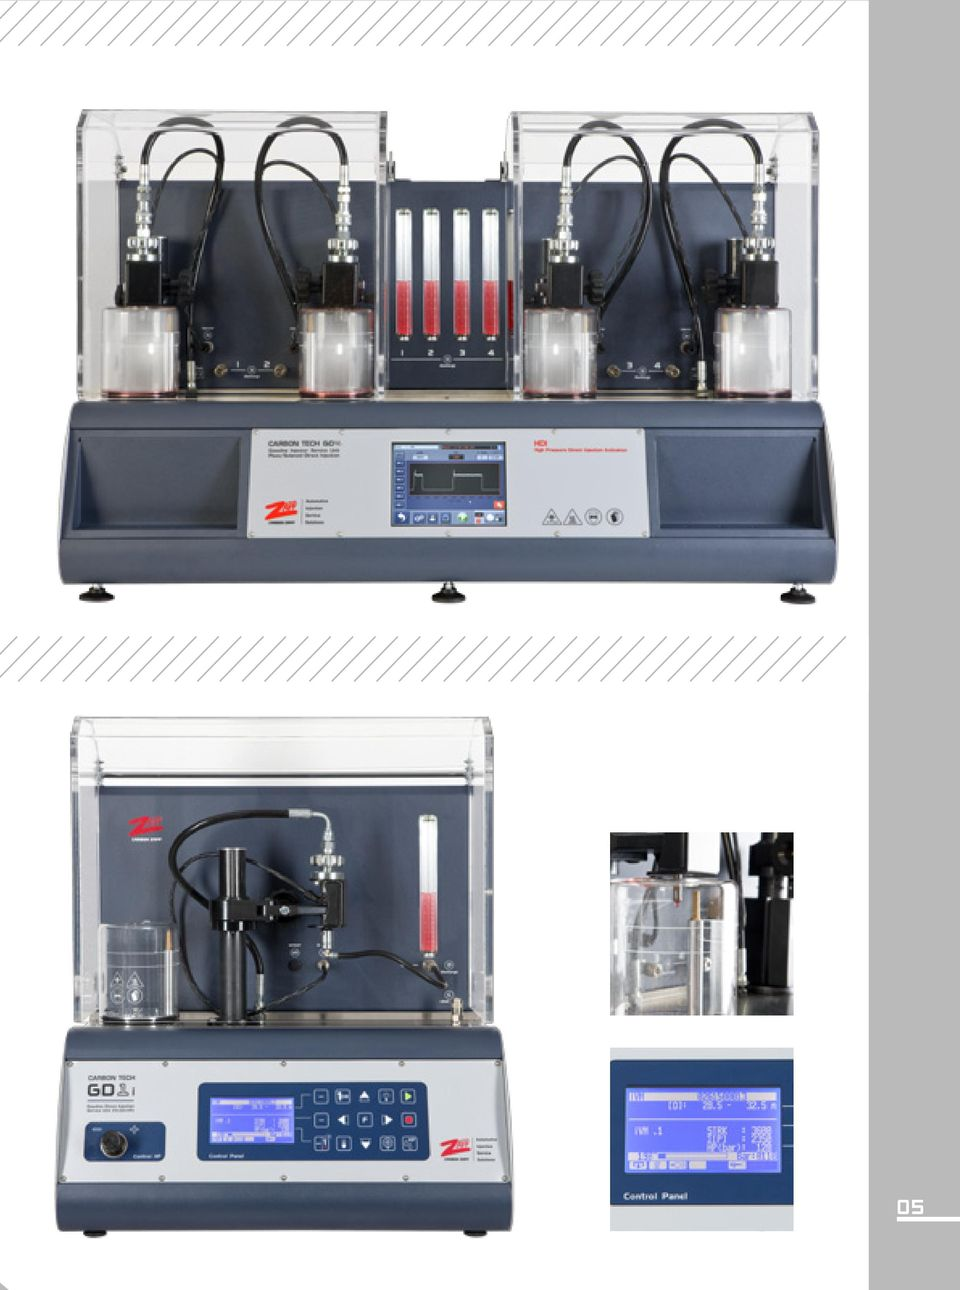 Carbon Tech Series GS8 GS4 GS2  GASOLINE injector equipment  The